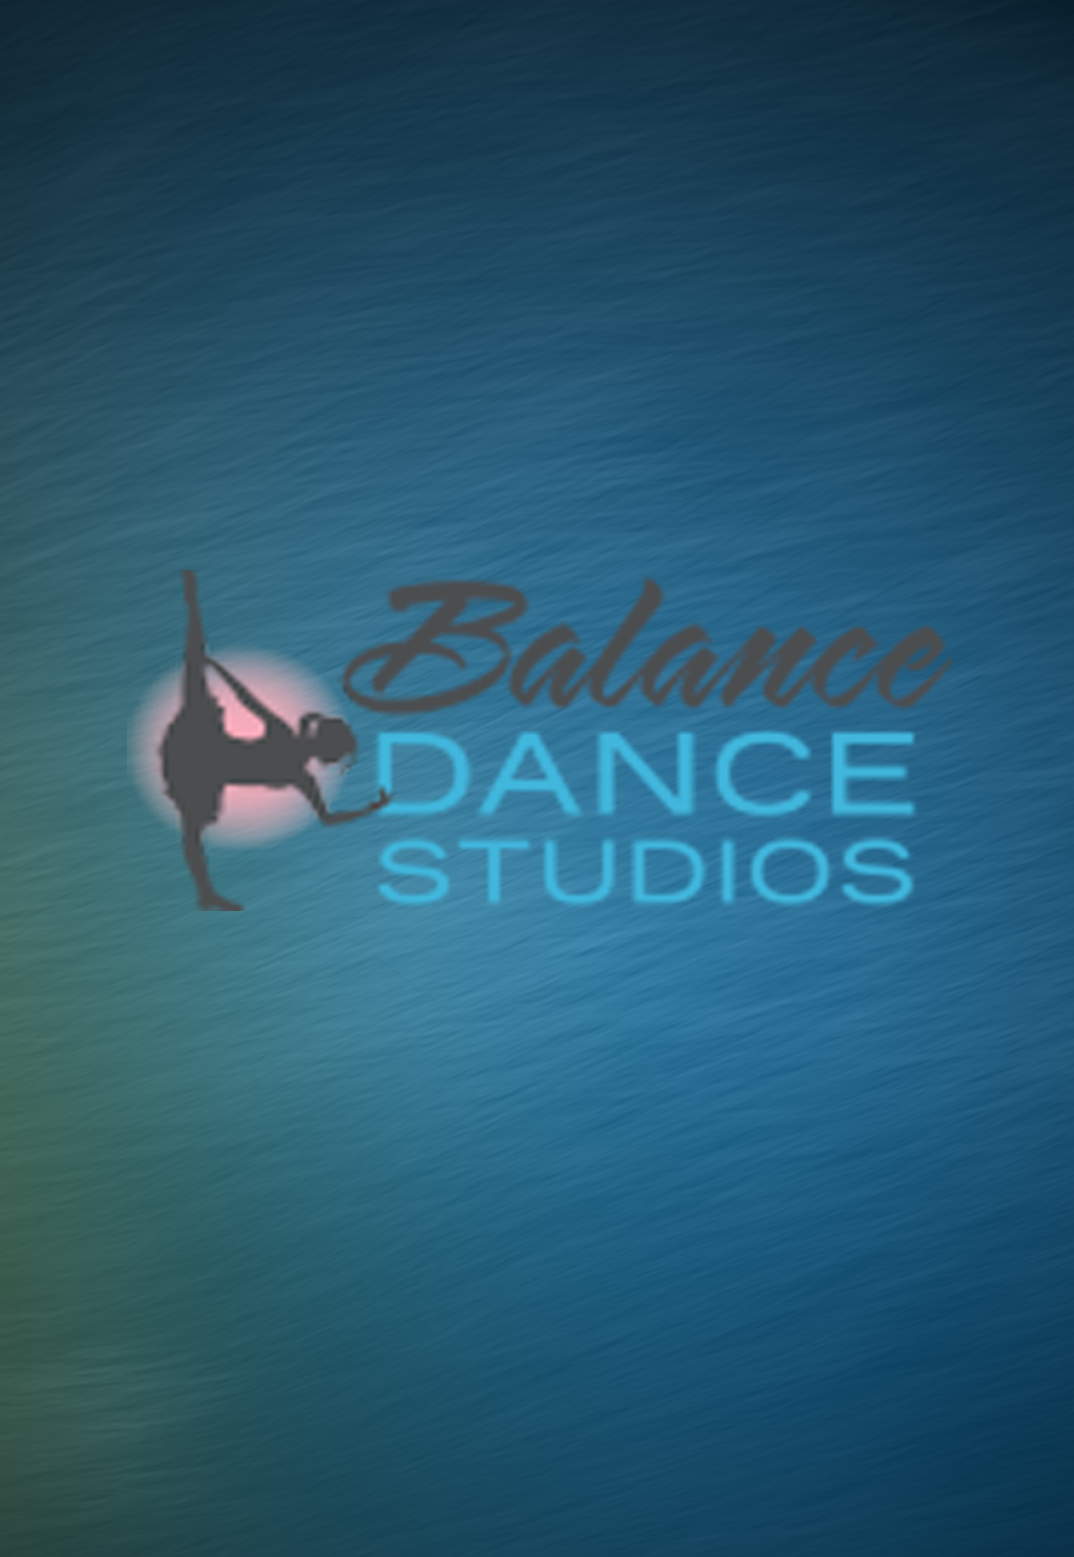 BALANCE DANCE STUDIO SATURDAY, MARCH 5, 2016